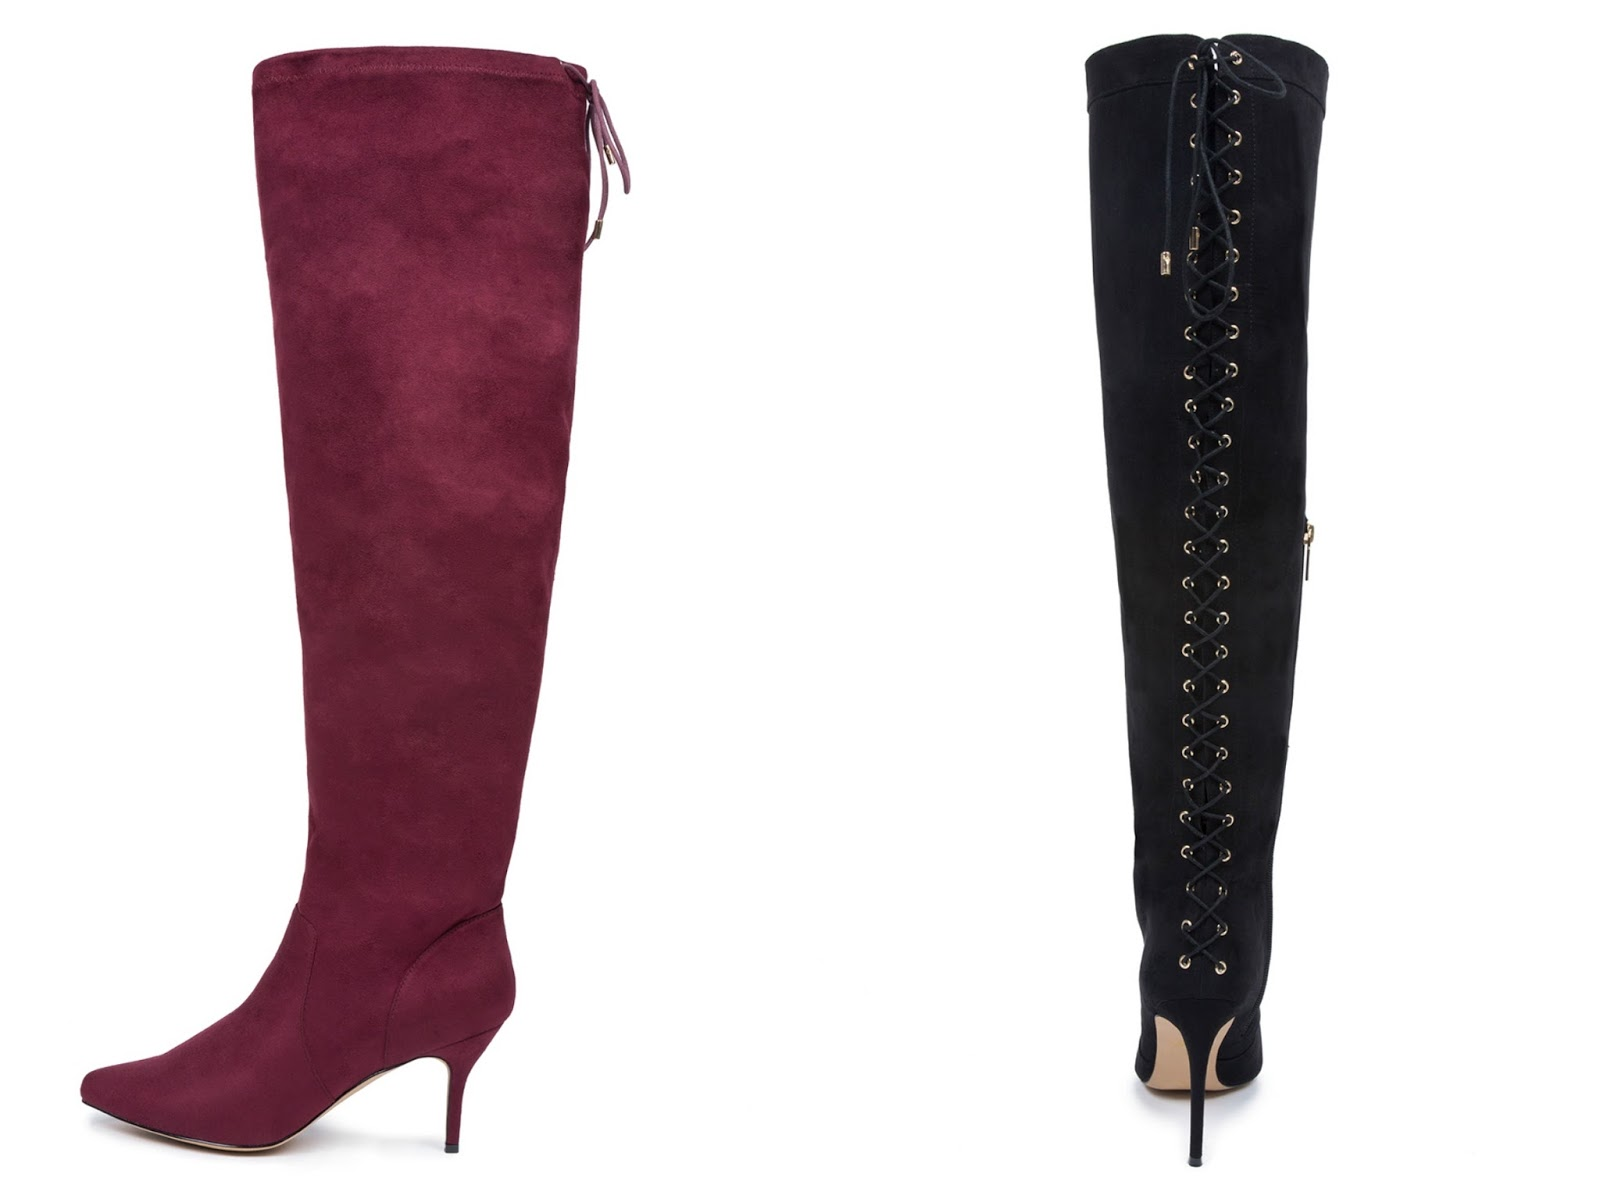 Hottest Over the Knee Boots for Wide Calves- A Thick Girl's Closet